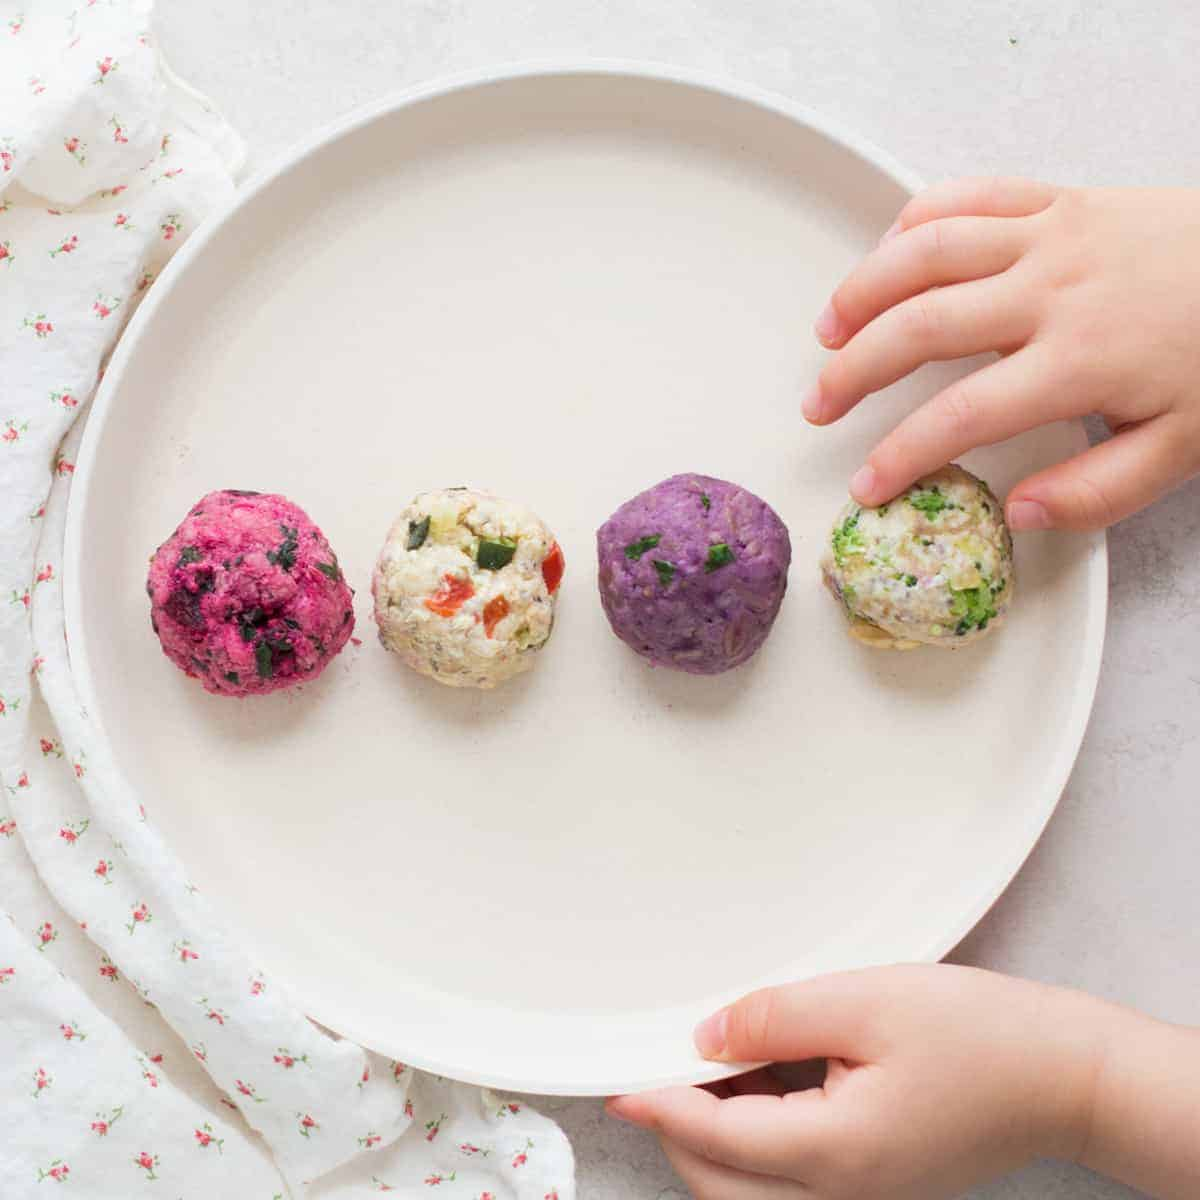 4 oatmeals shaped into balls and plated on a white plate